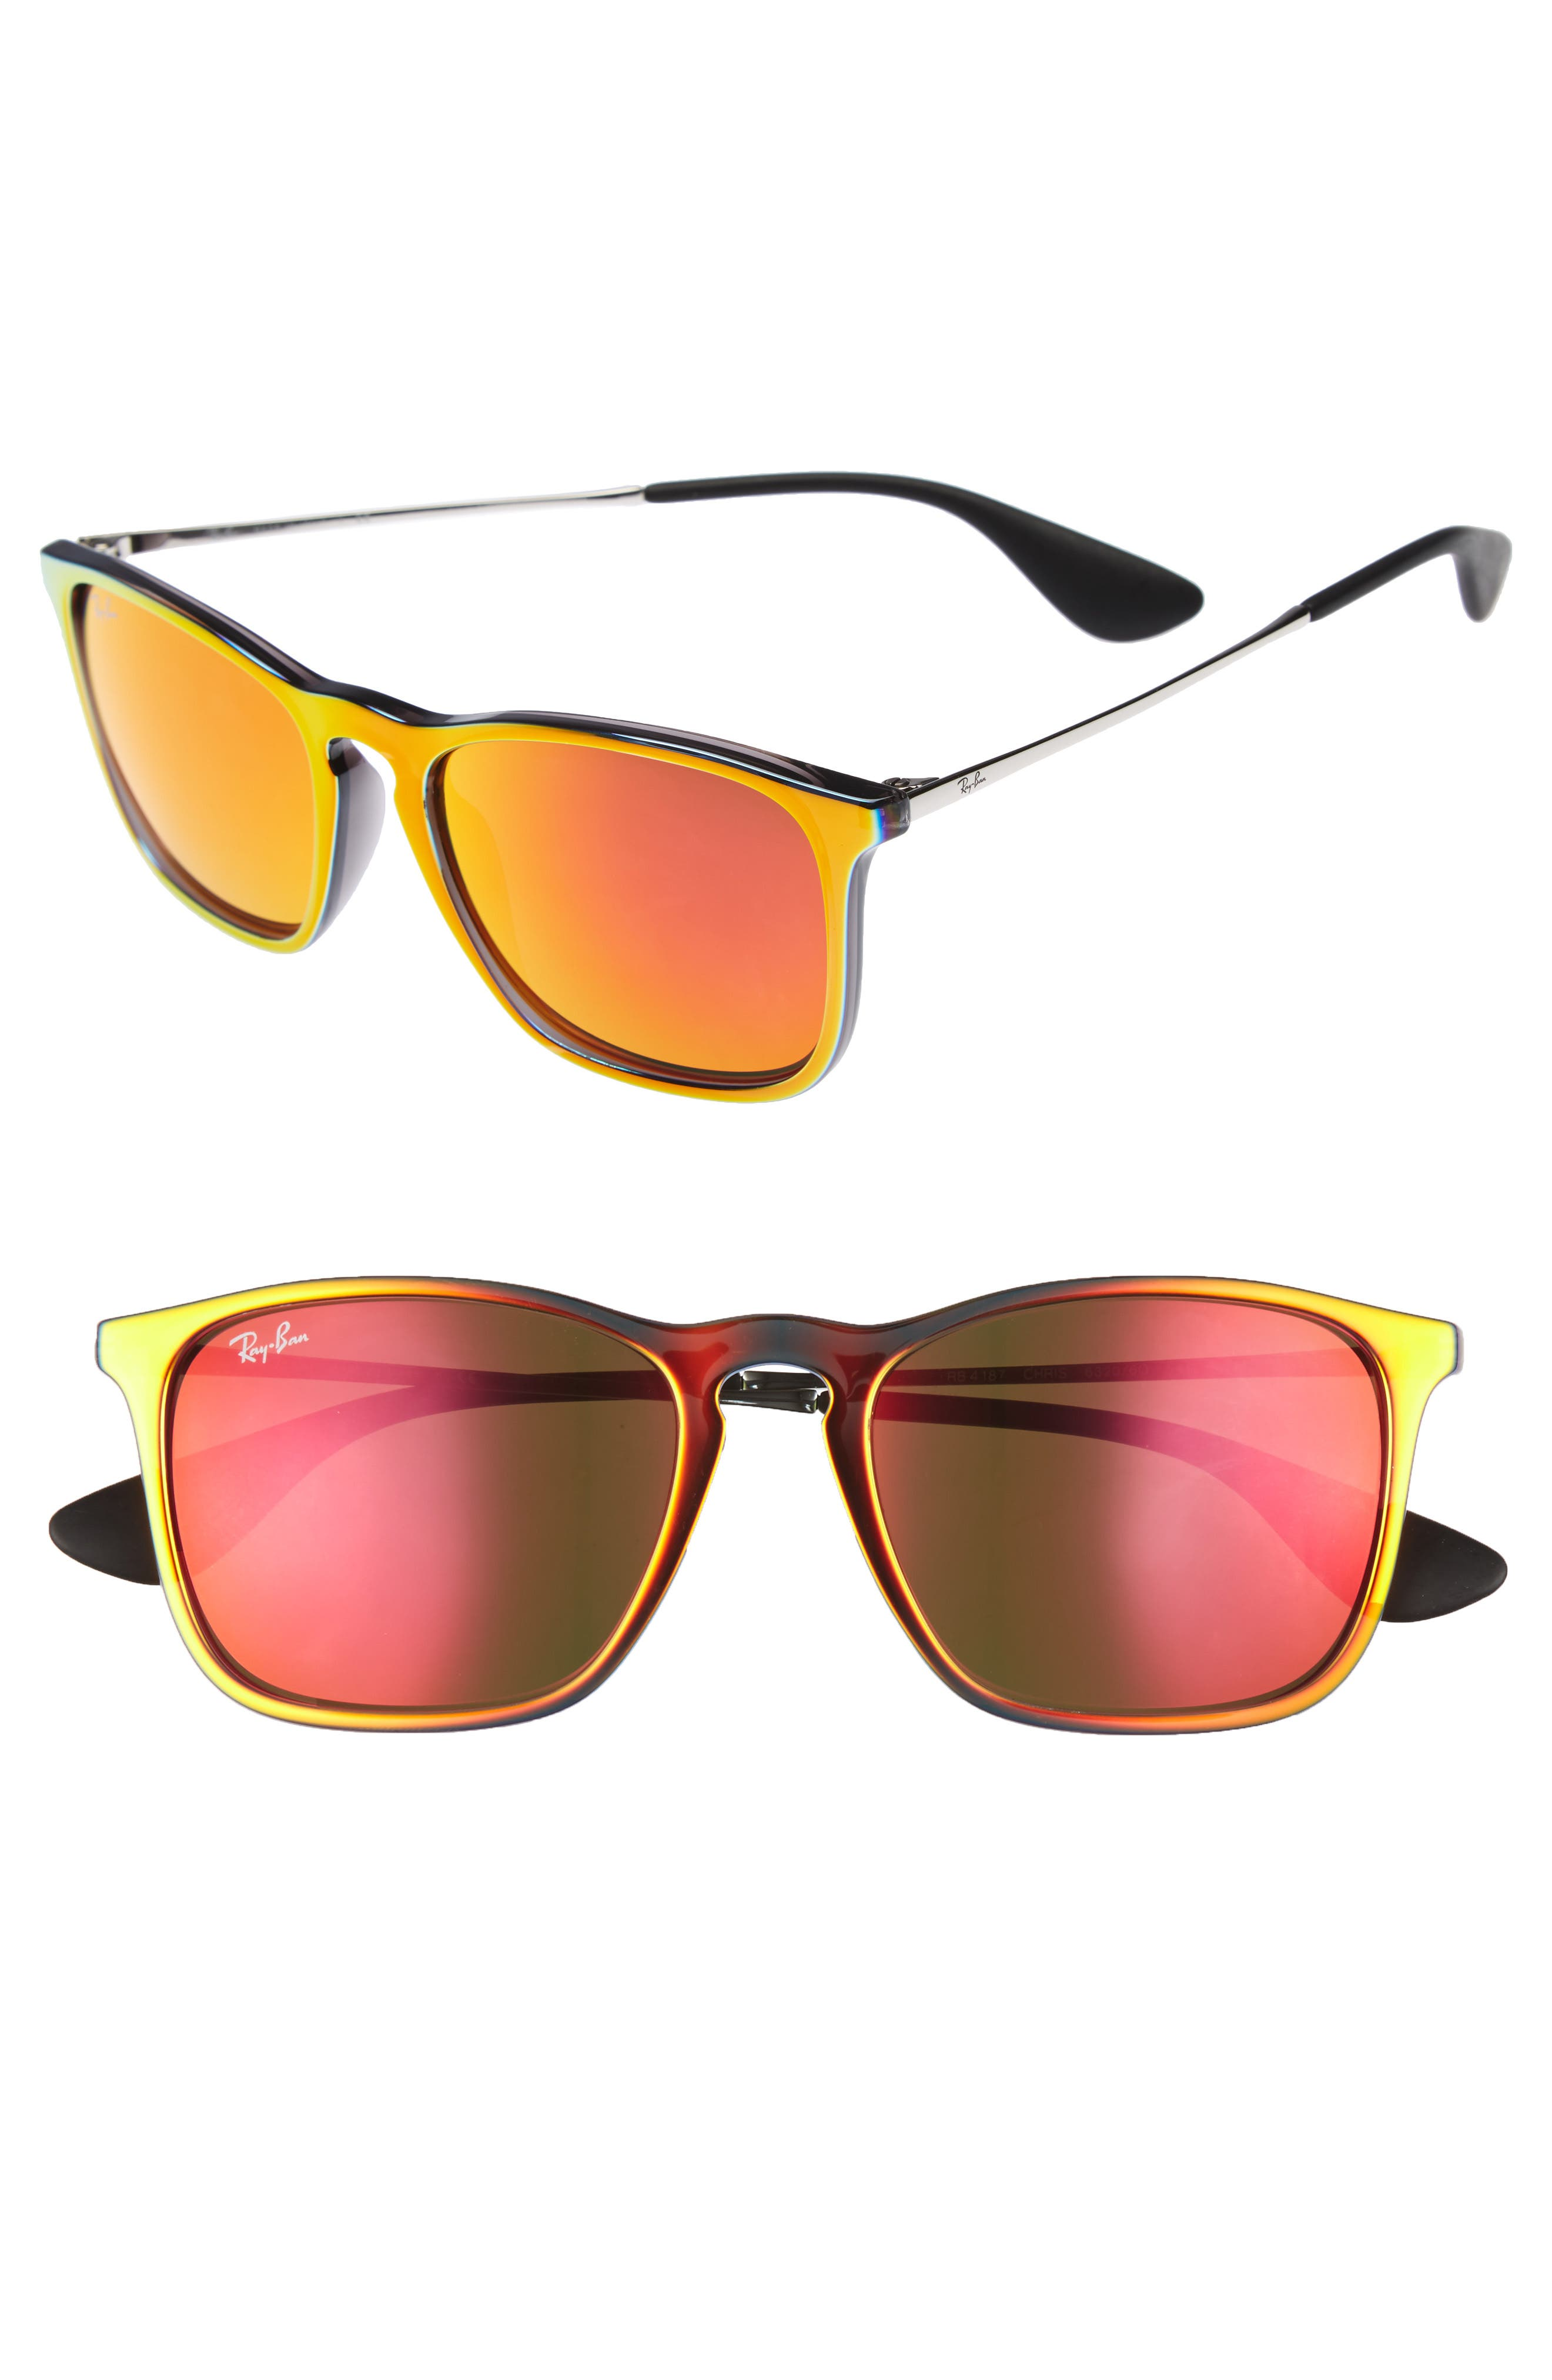 Ray-Ban 'Youngster' Velvet 54mm Sunglasses